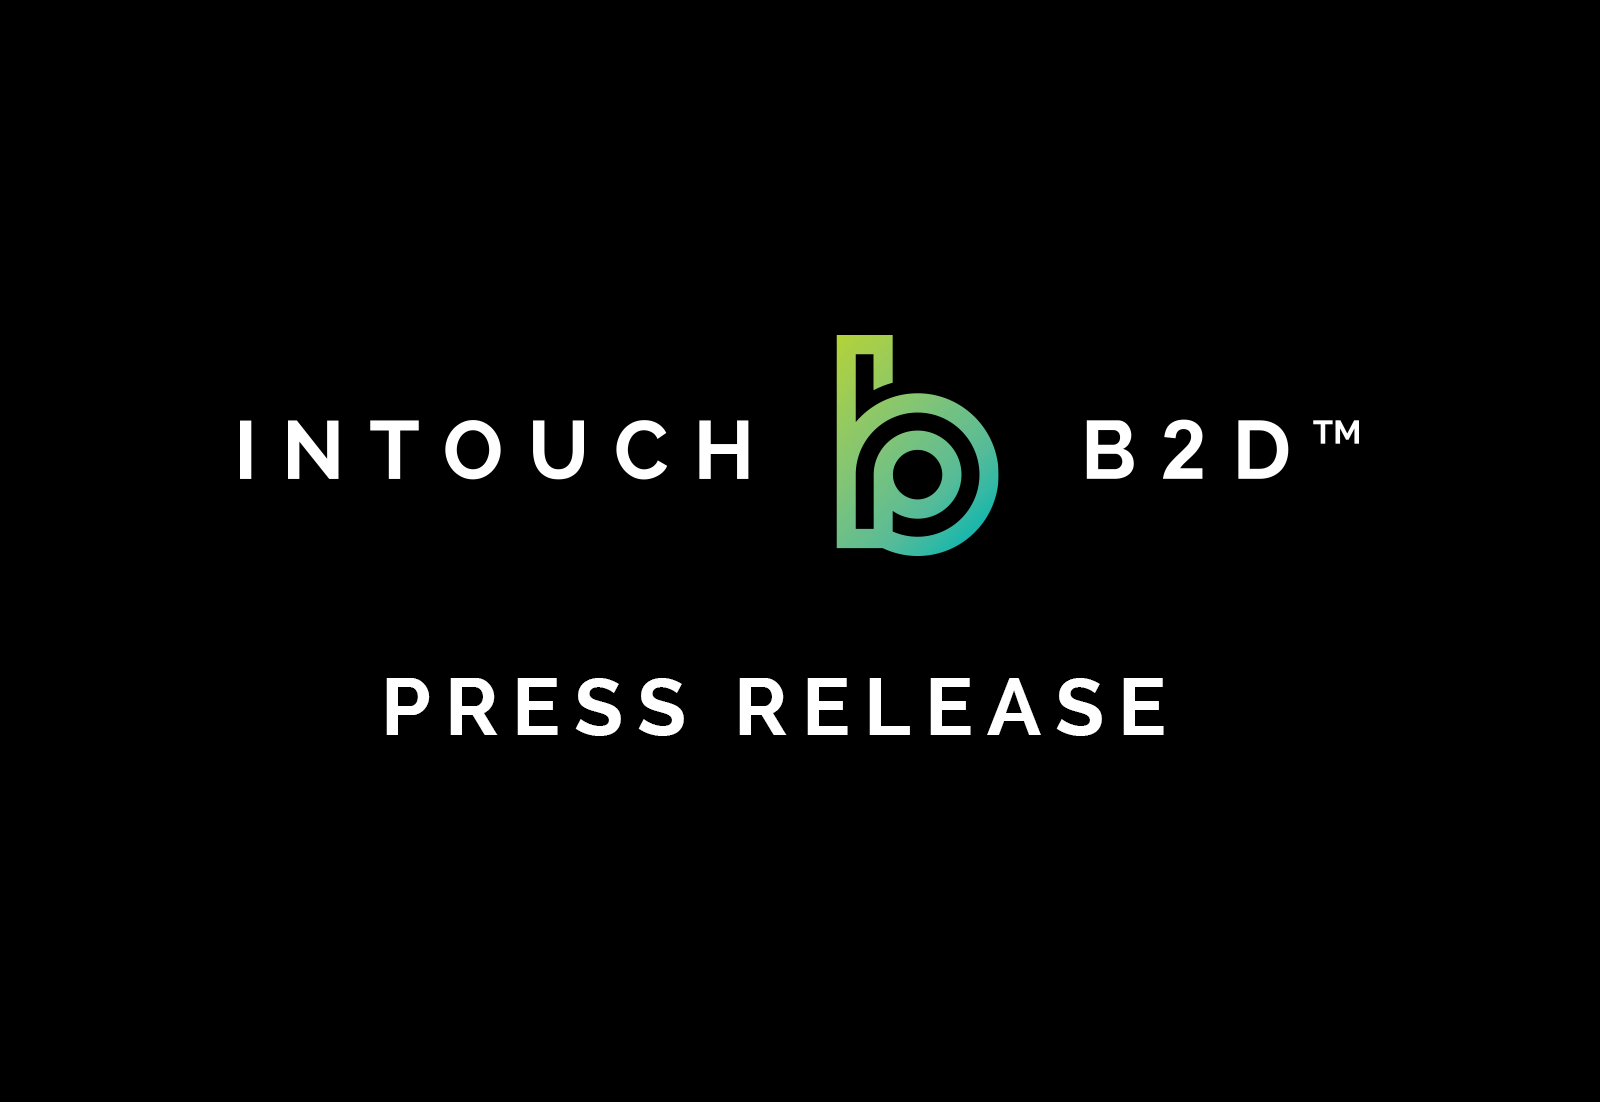 Banner of intouch b2d press release